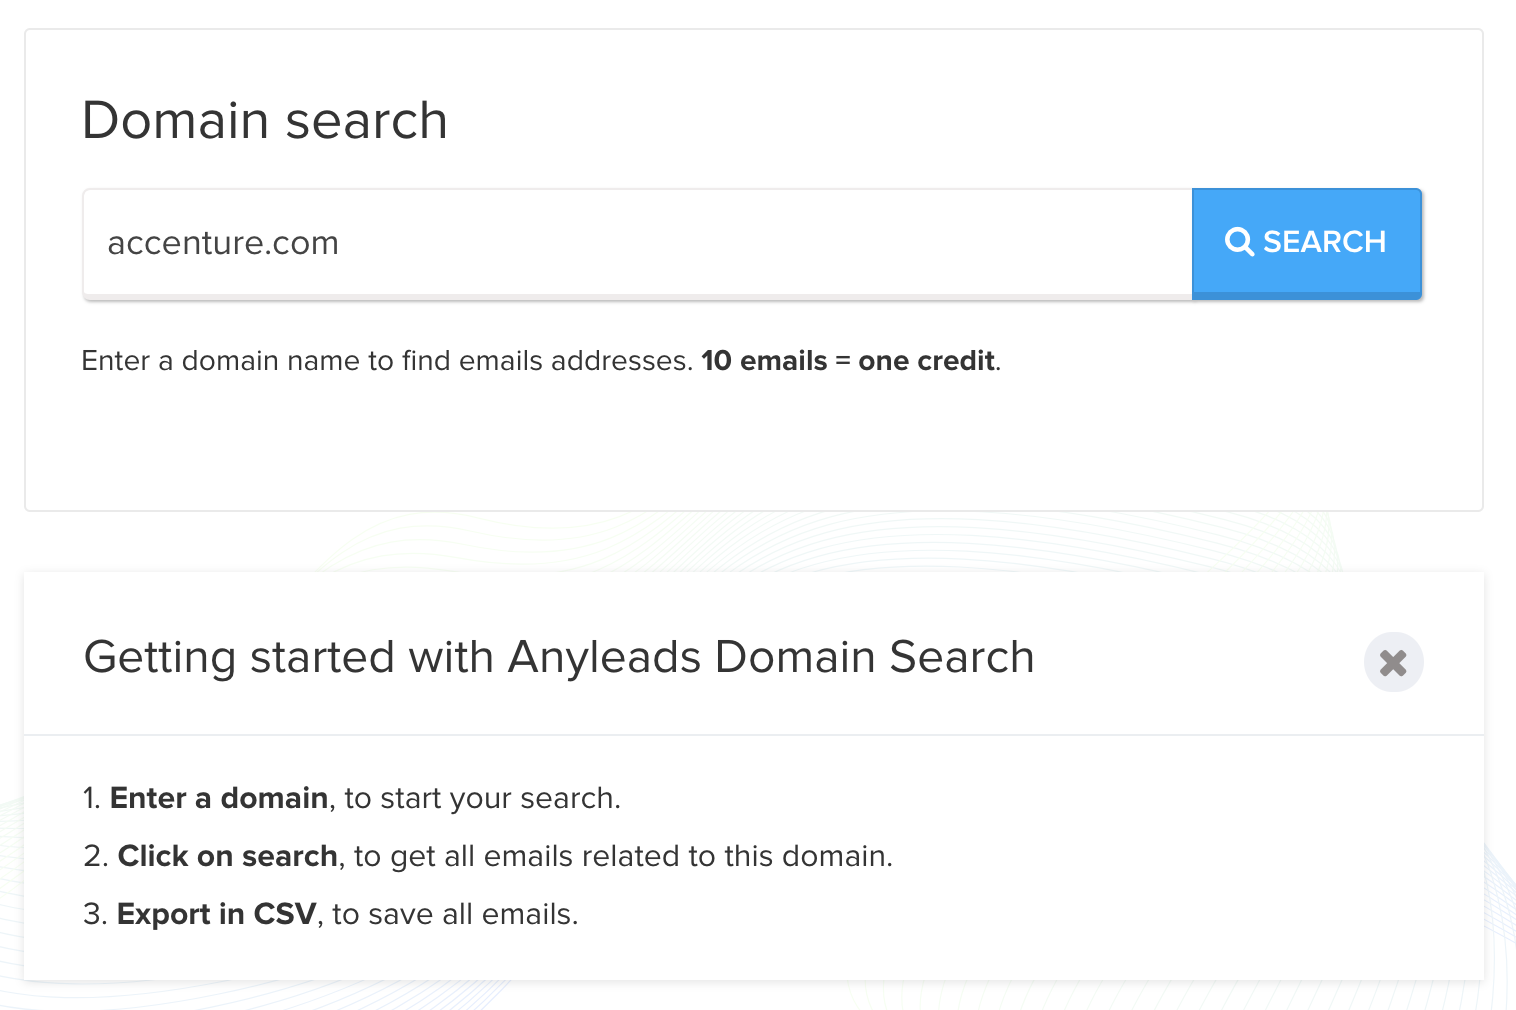 Start a search on domain level to get relevant contacts